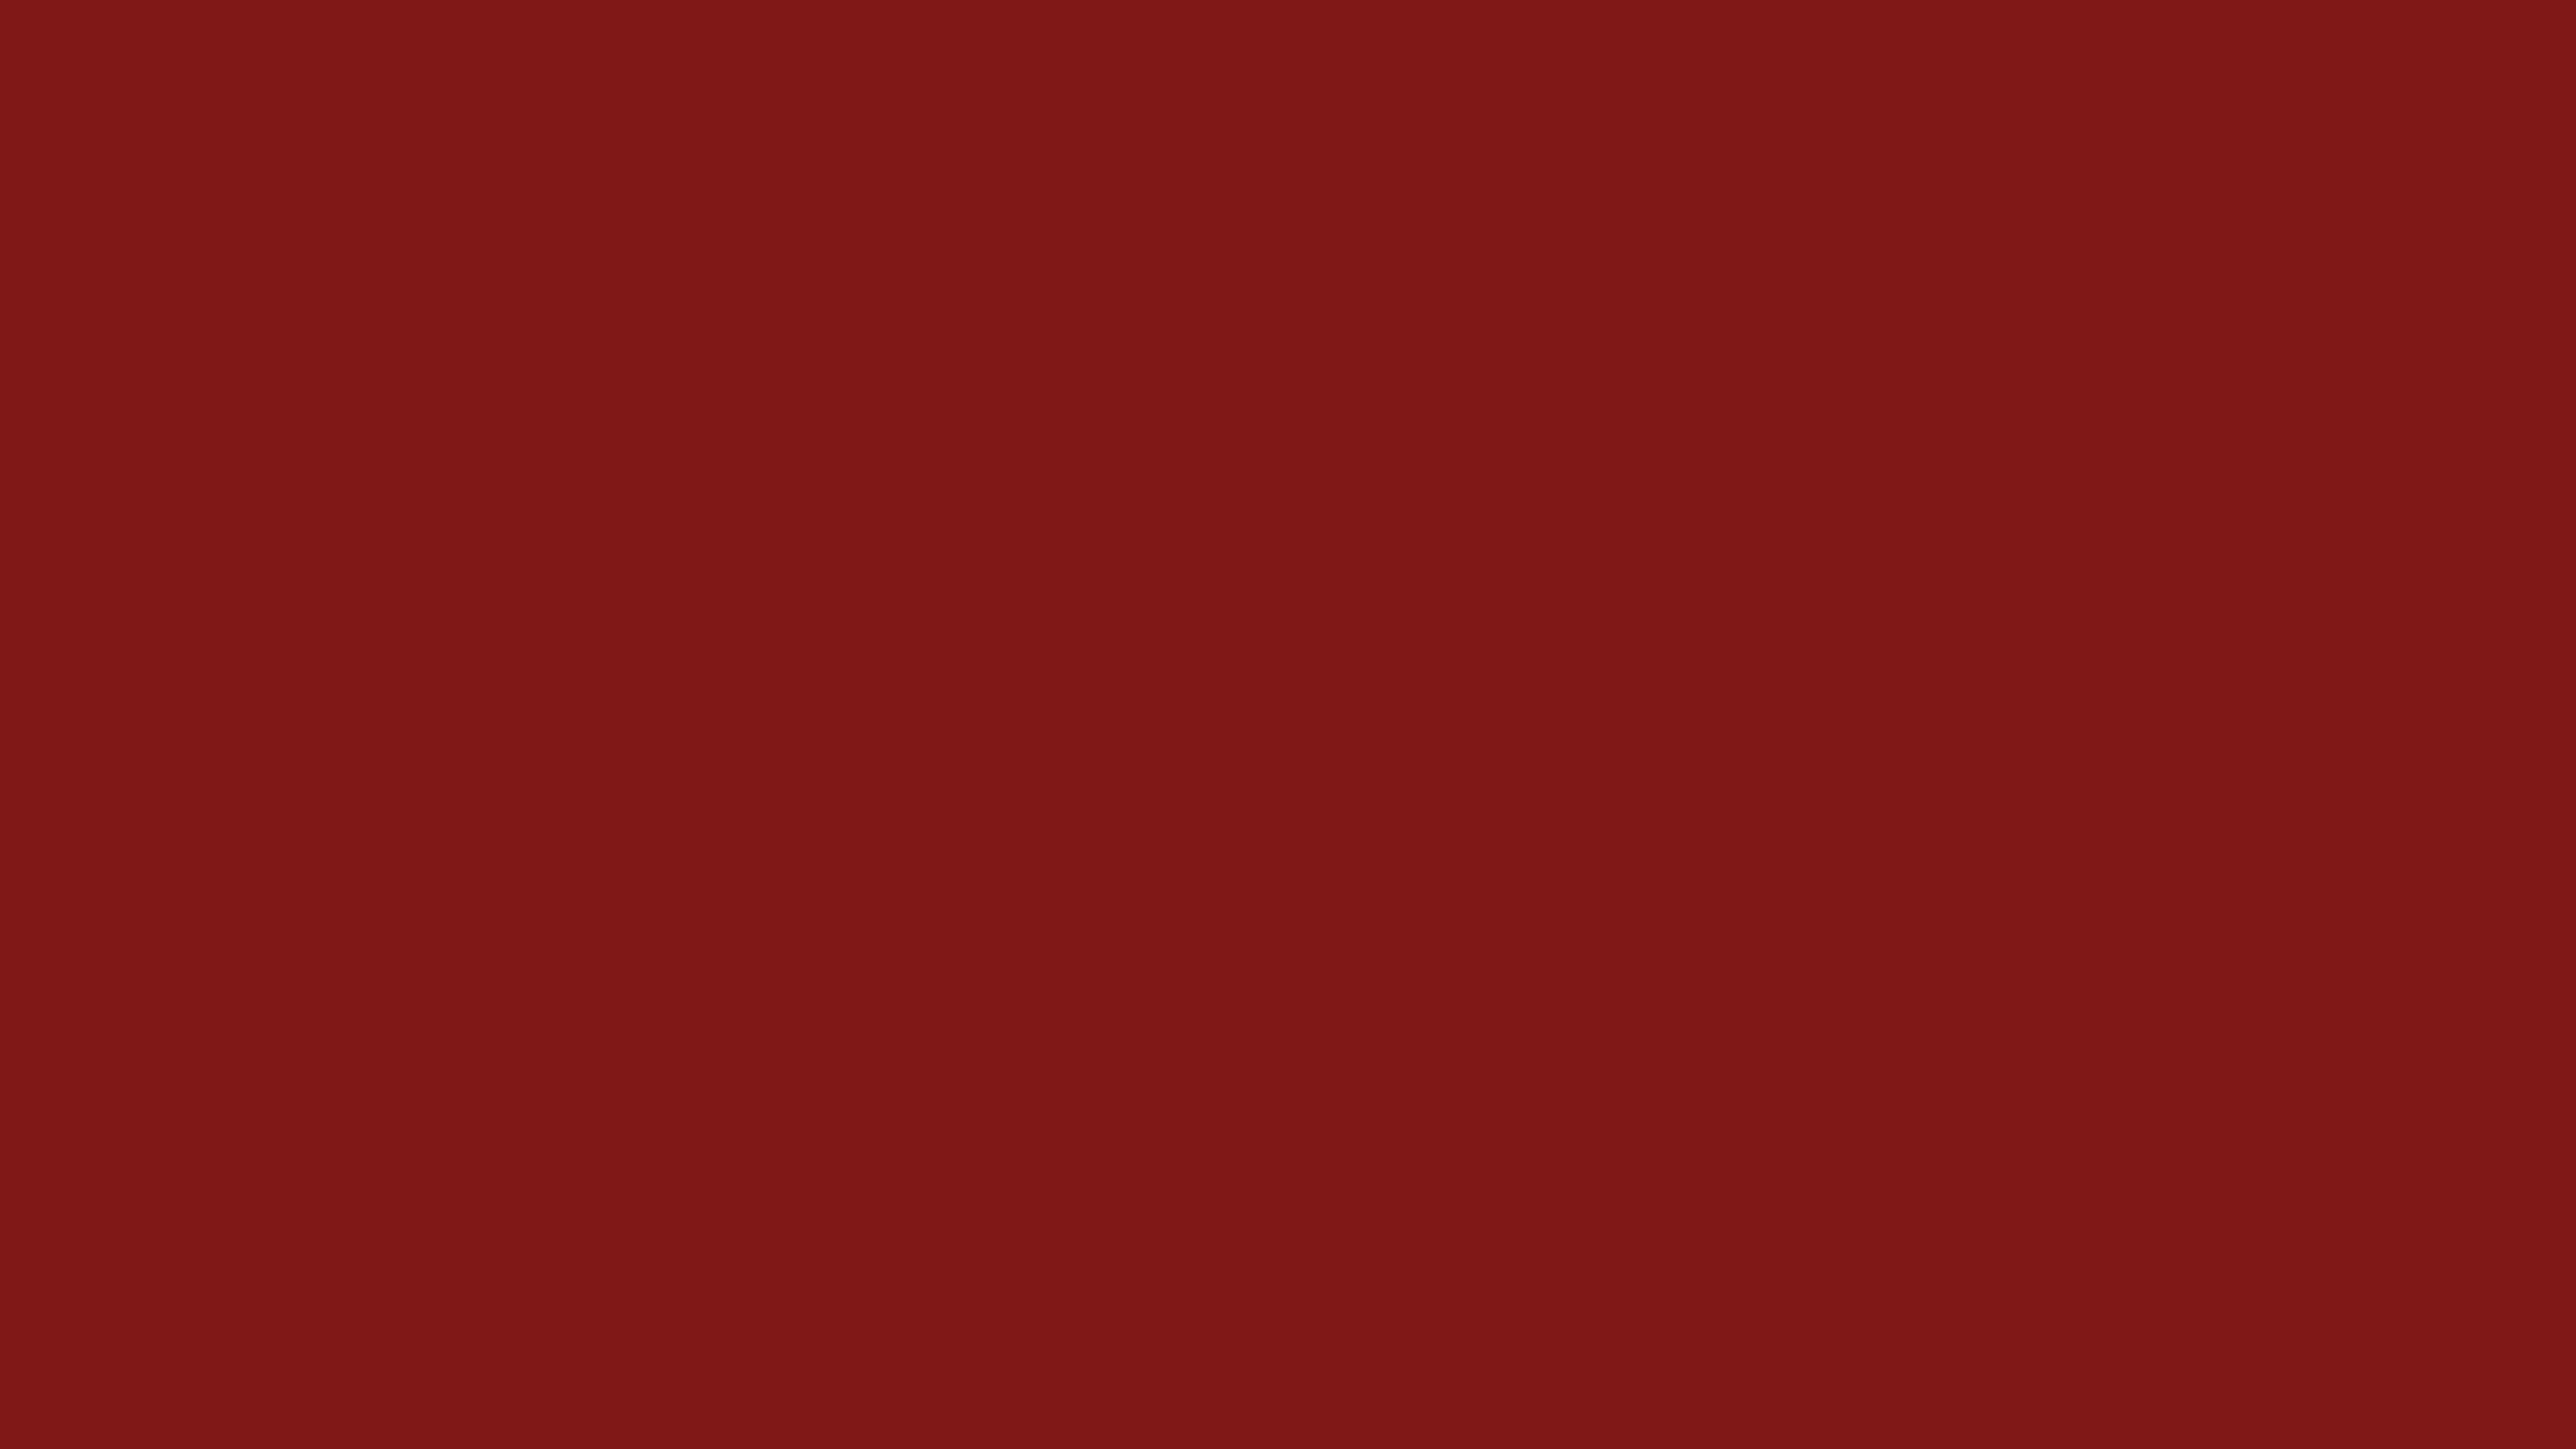 3840x2160 Falu Red Solid Color Background